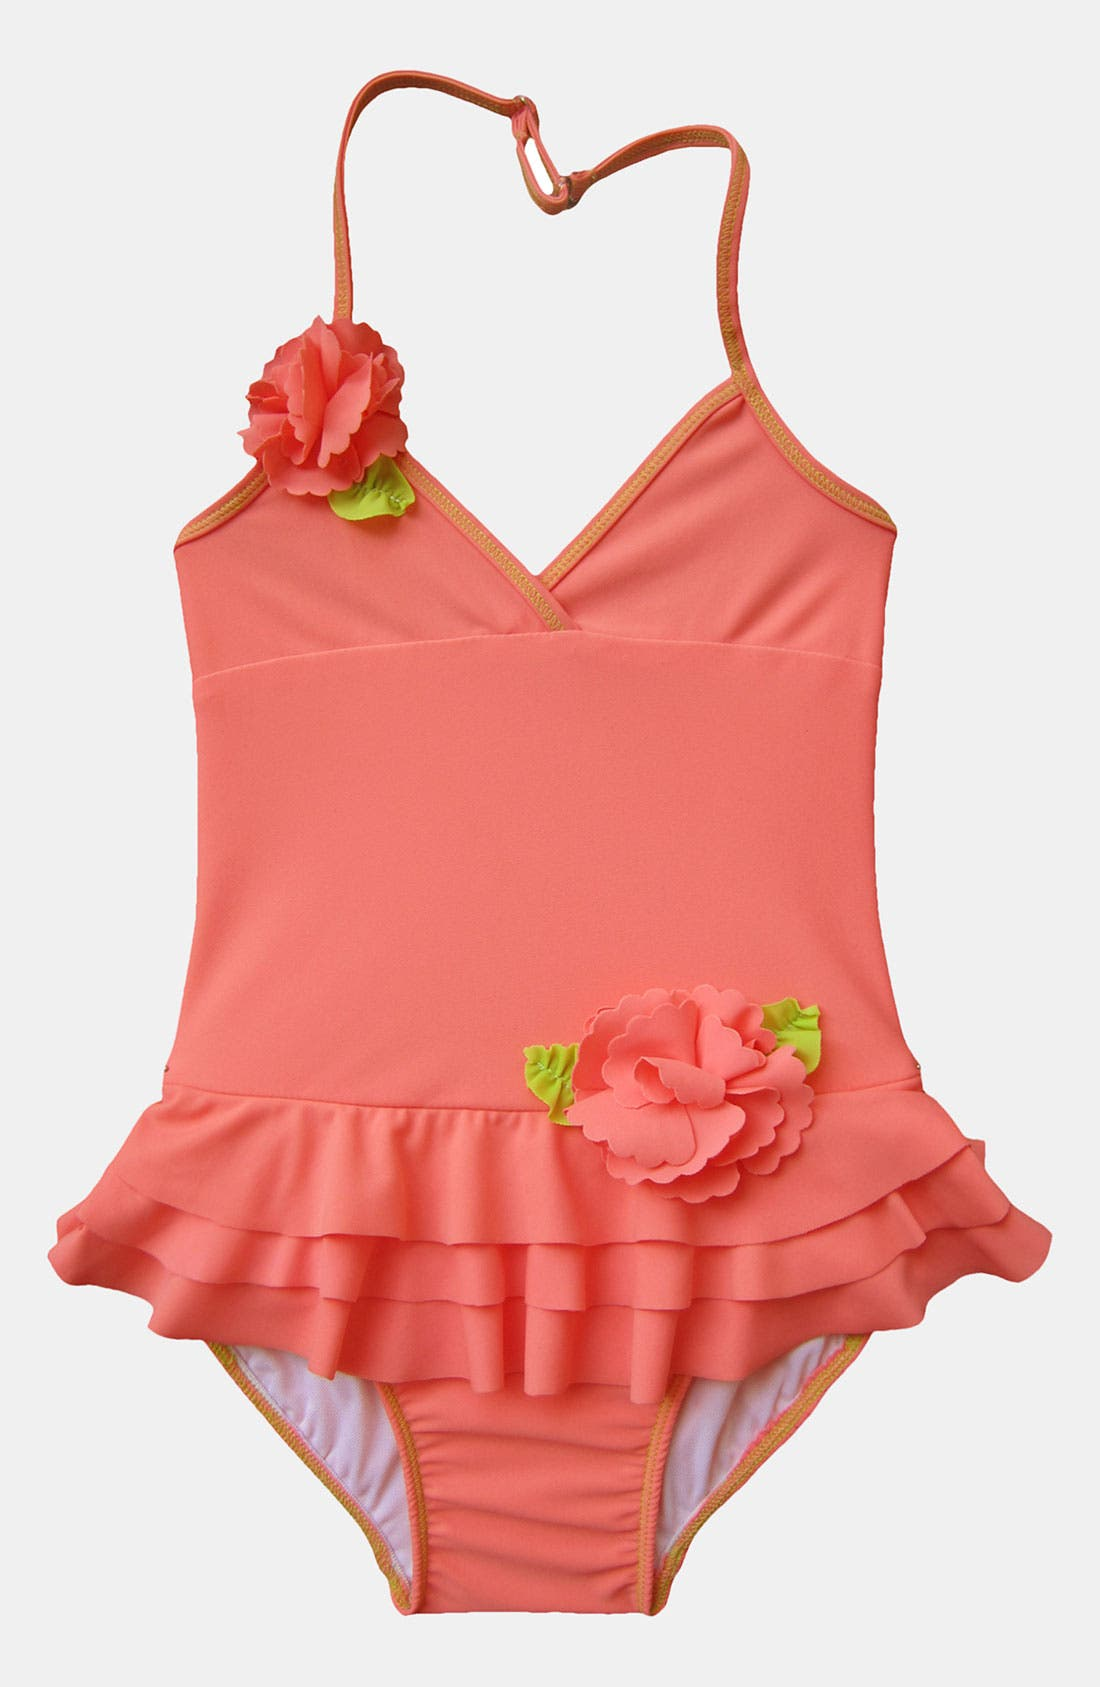 Alternate Image 1 Selected - Isobella & Chloe One Piece Swimsuit (Toddler)